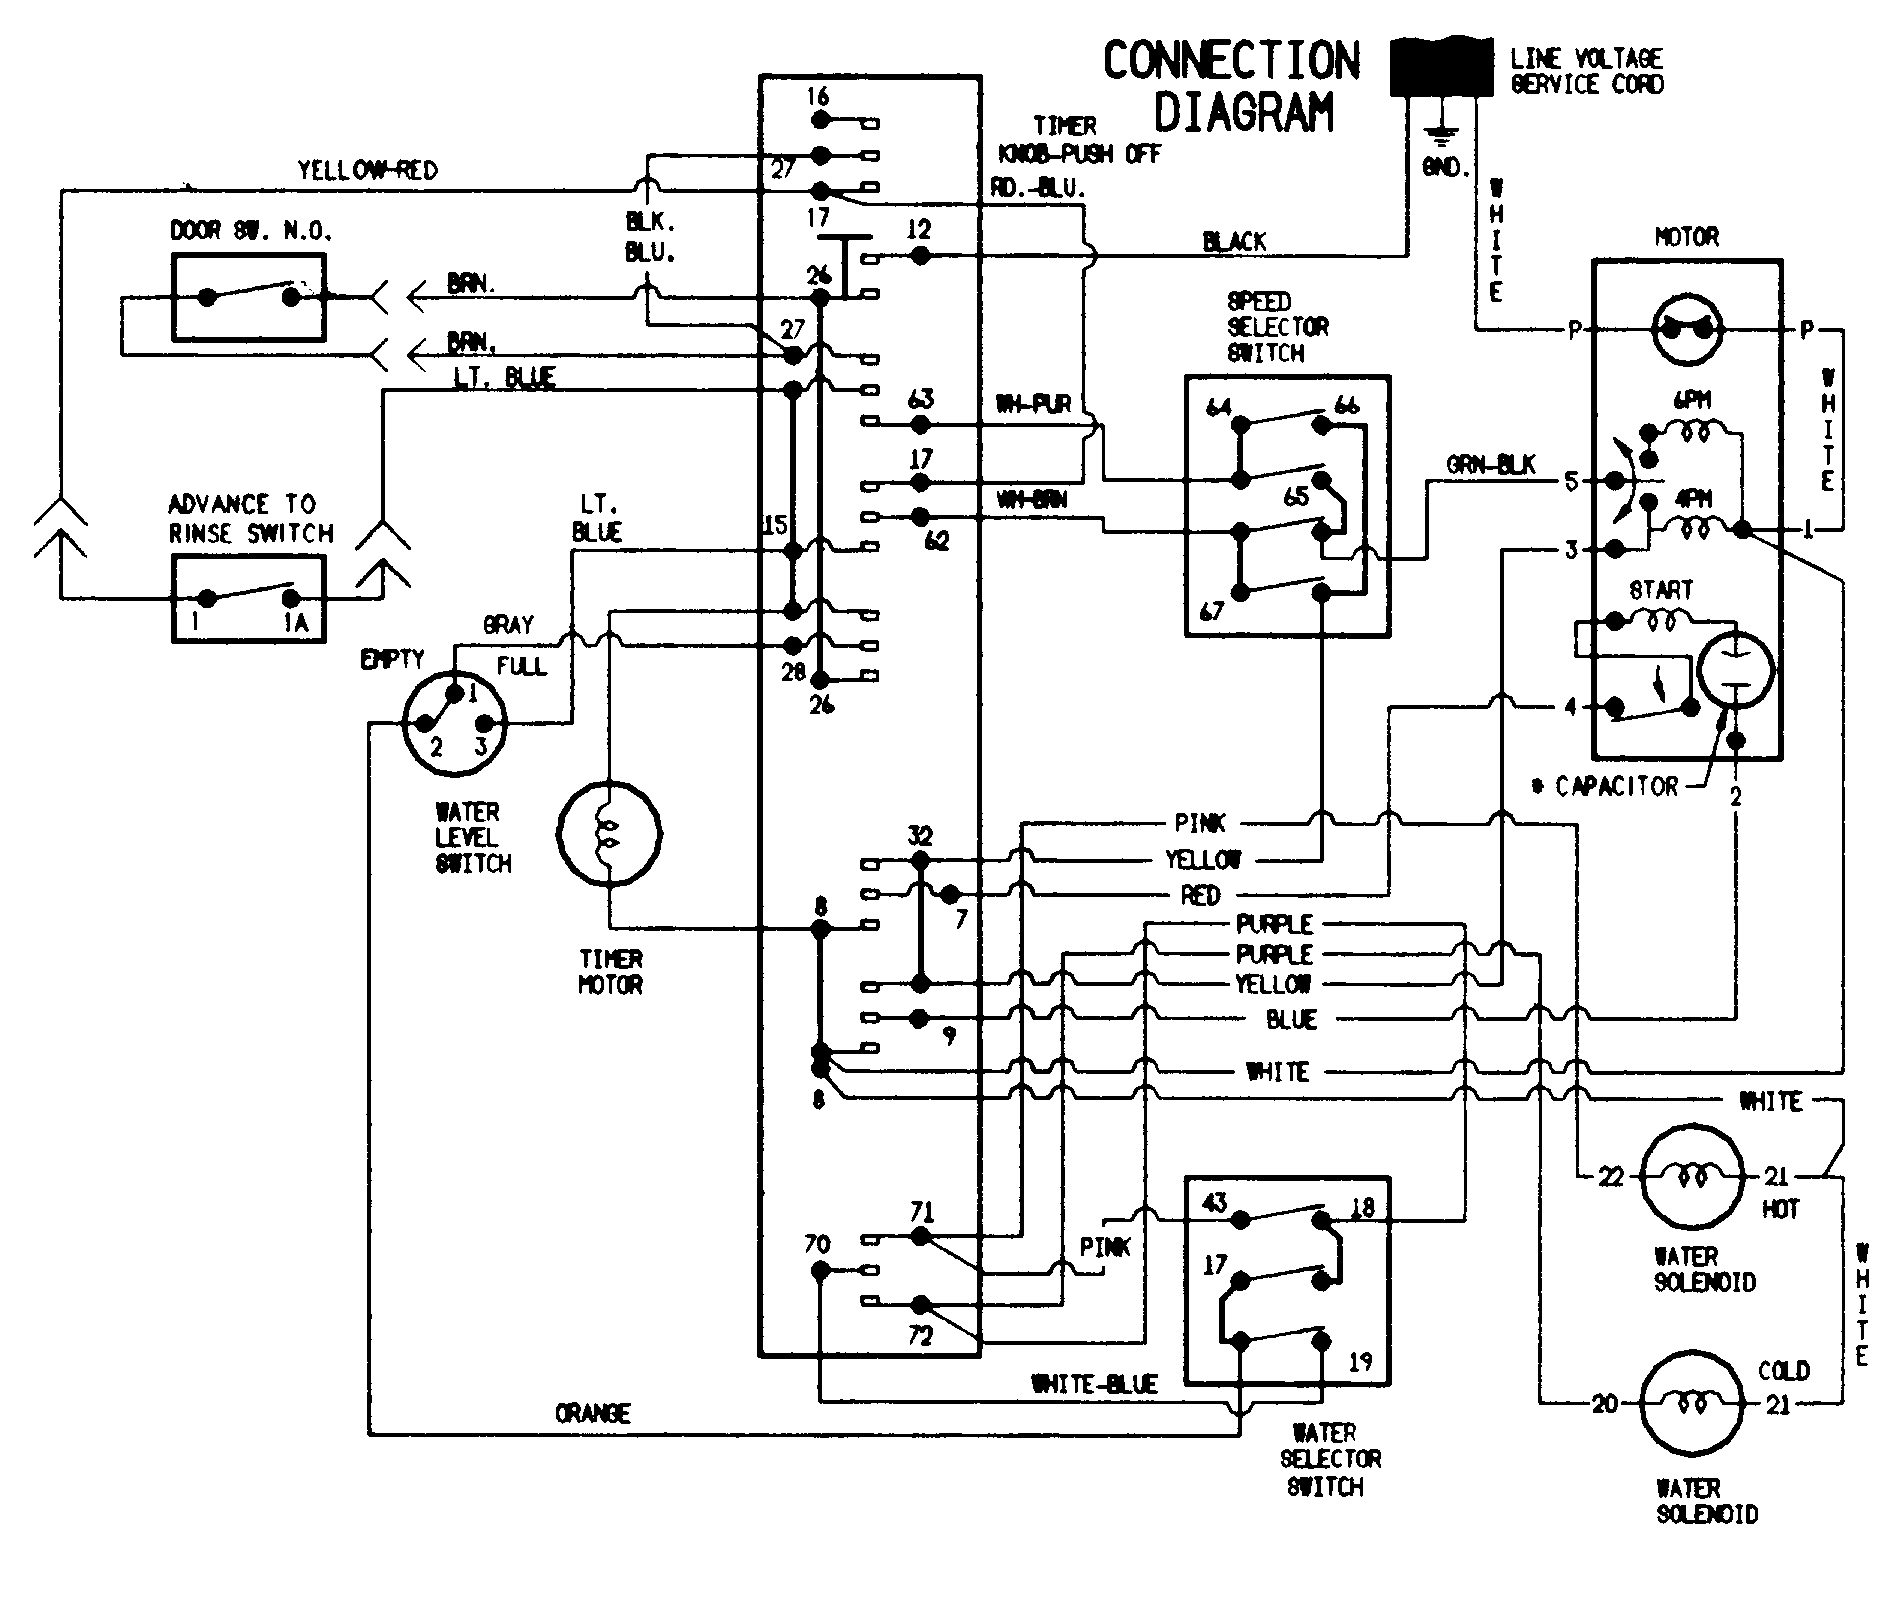 small resolution of whirlpool duet dryer wiring schematic diagrams